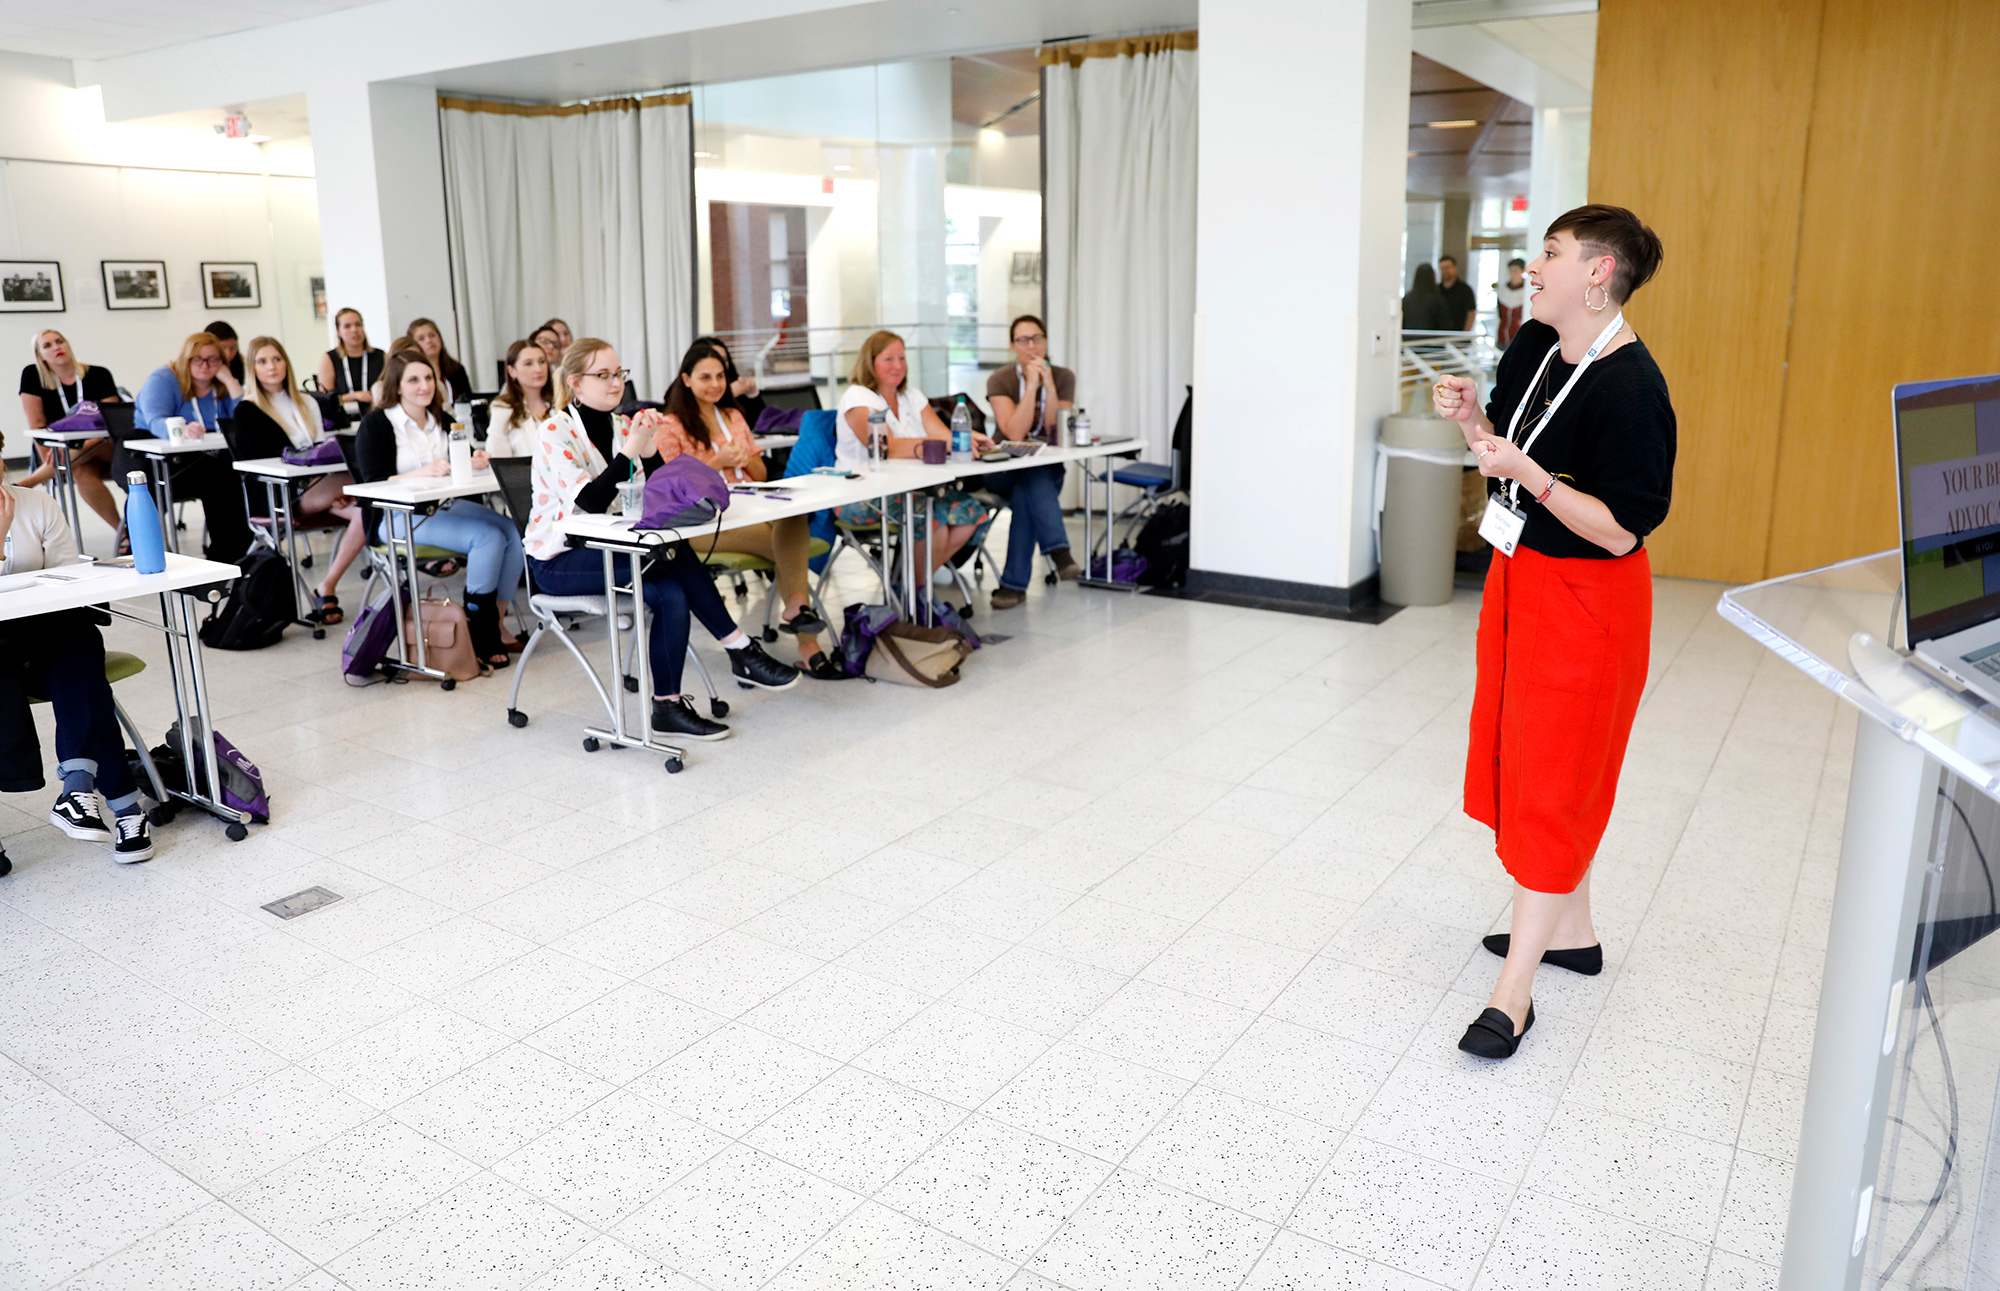 Marissa Lang, of the Washington Post, leads a session on advocating for yourself at the Women in Journalism Workshop at the Reynolds Journalism Institute Friday May 3, 2019 in Columbia, Missouri.